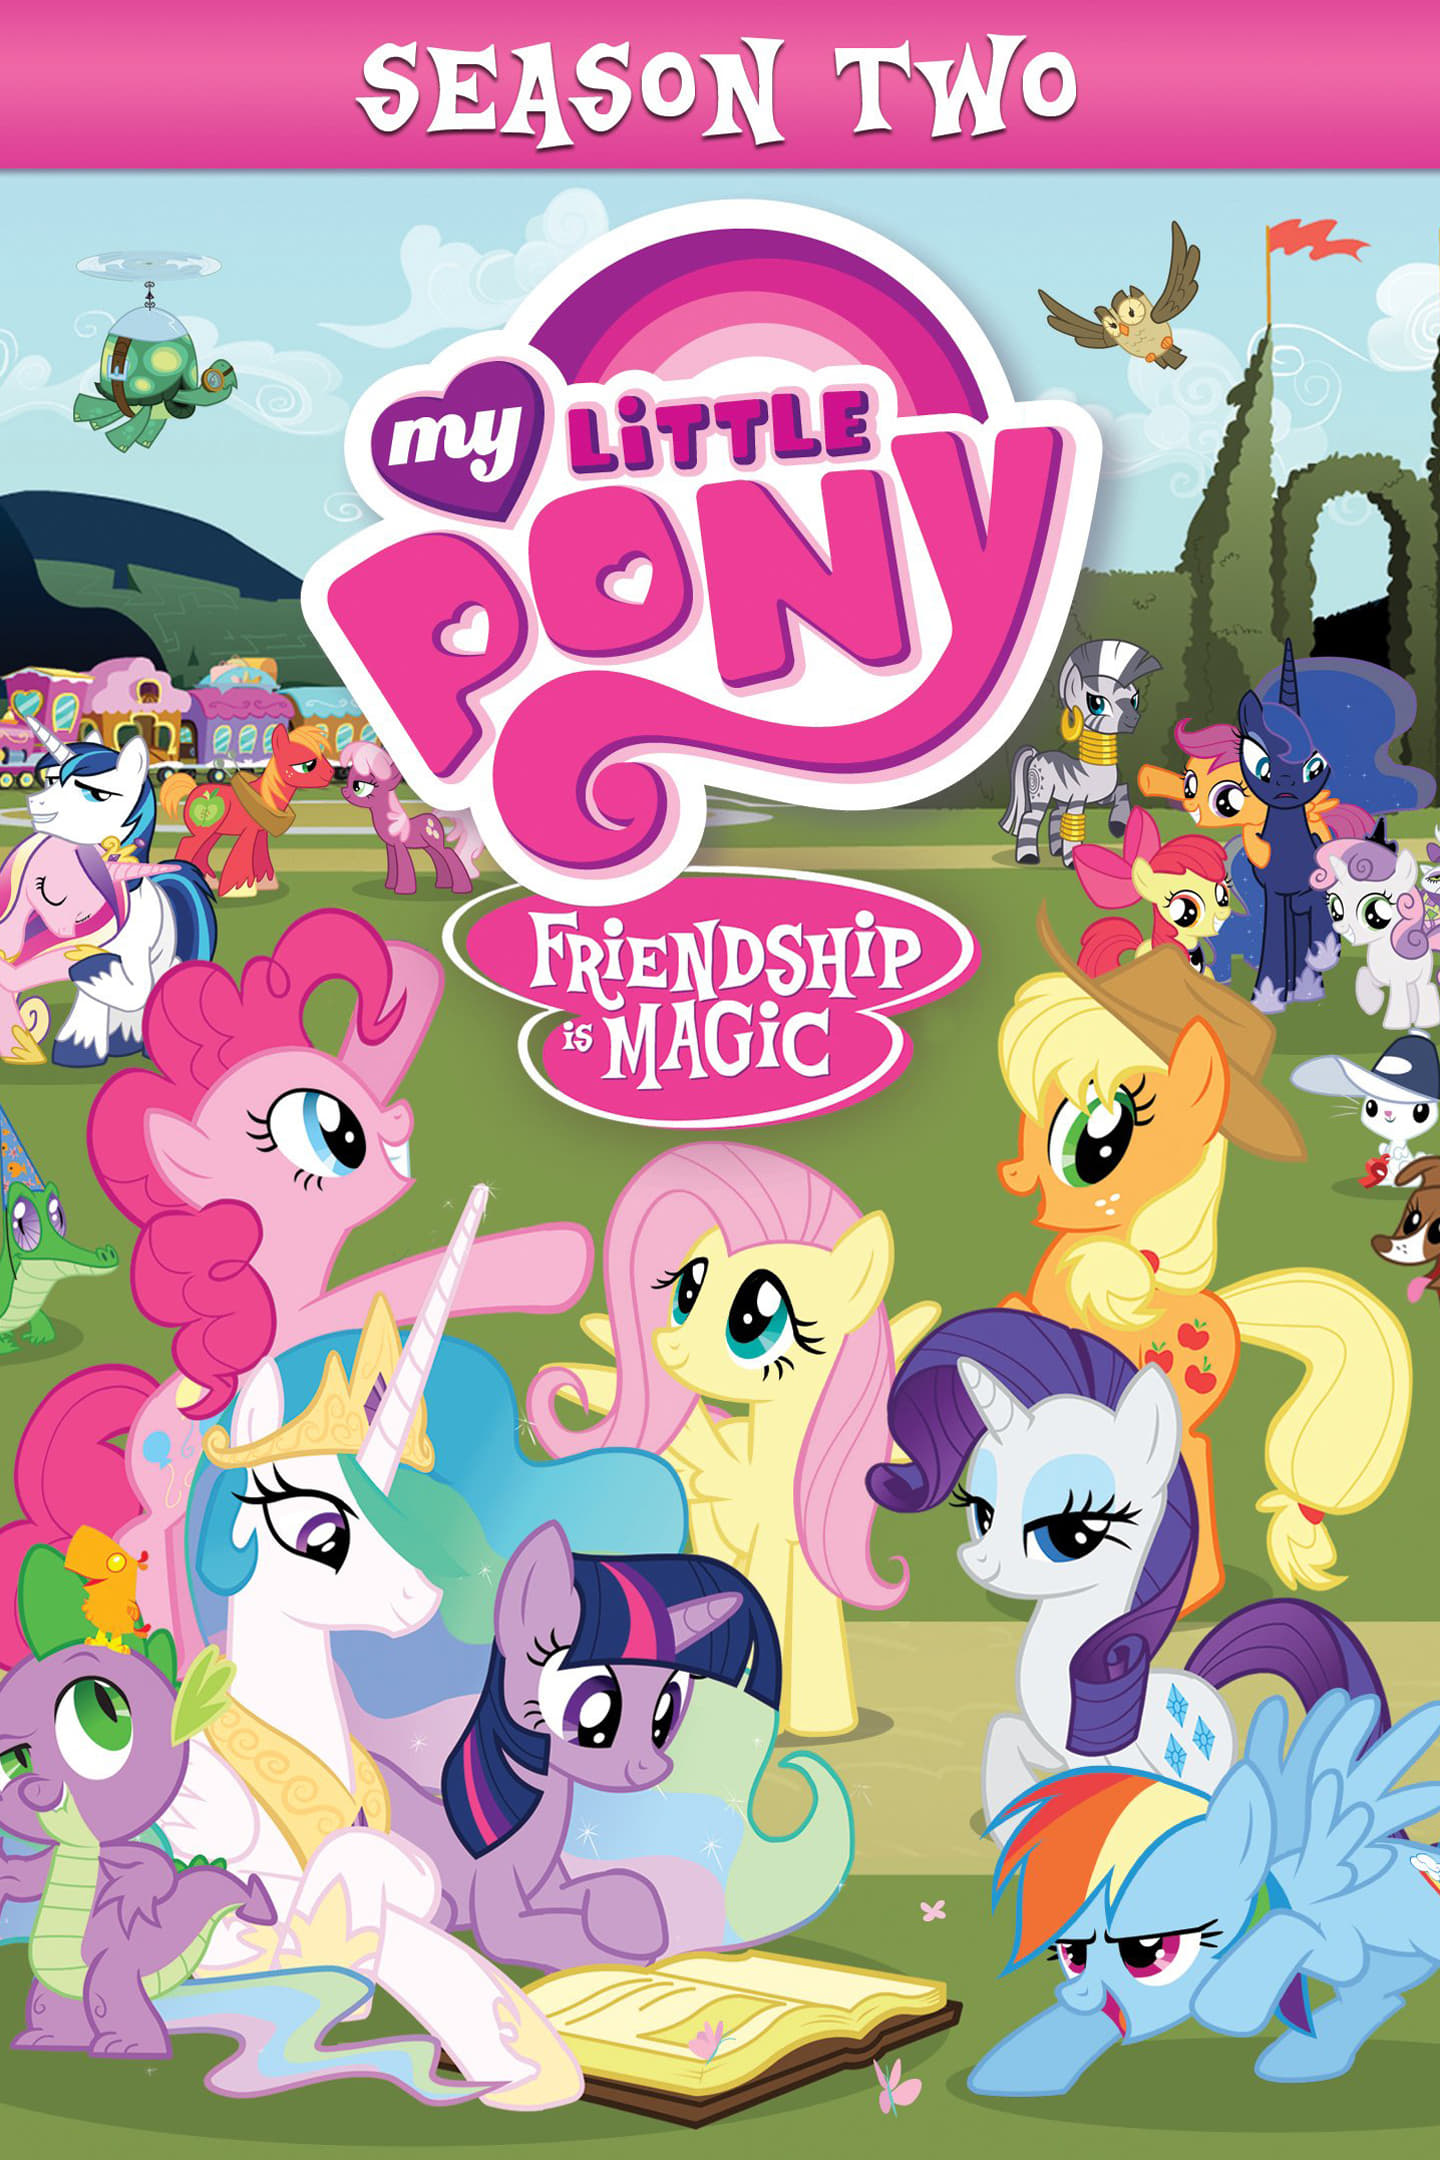 My Little Pony: Friendship Is Magic Season 2